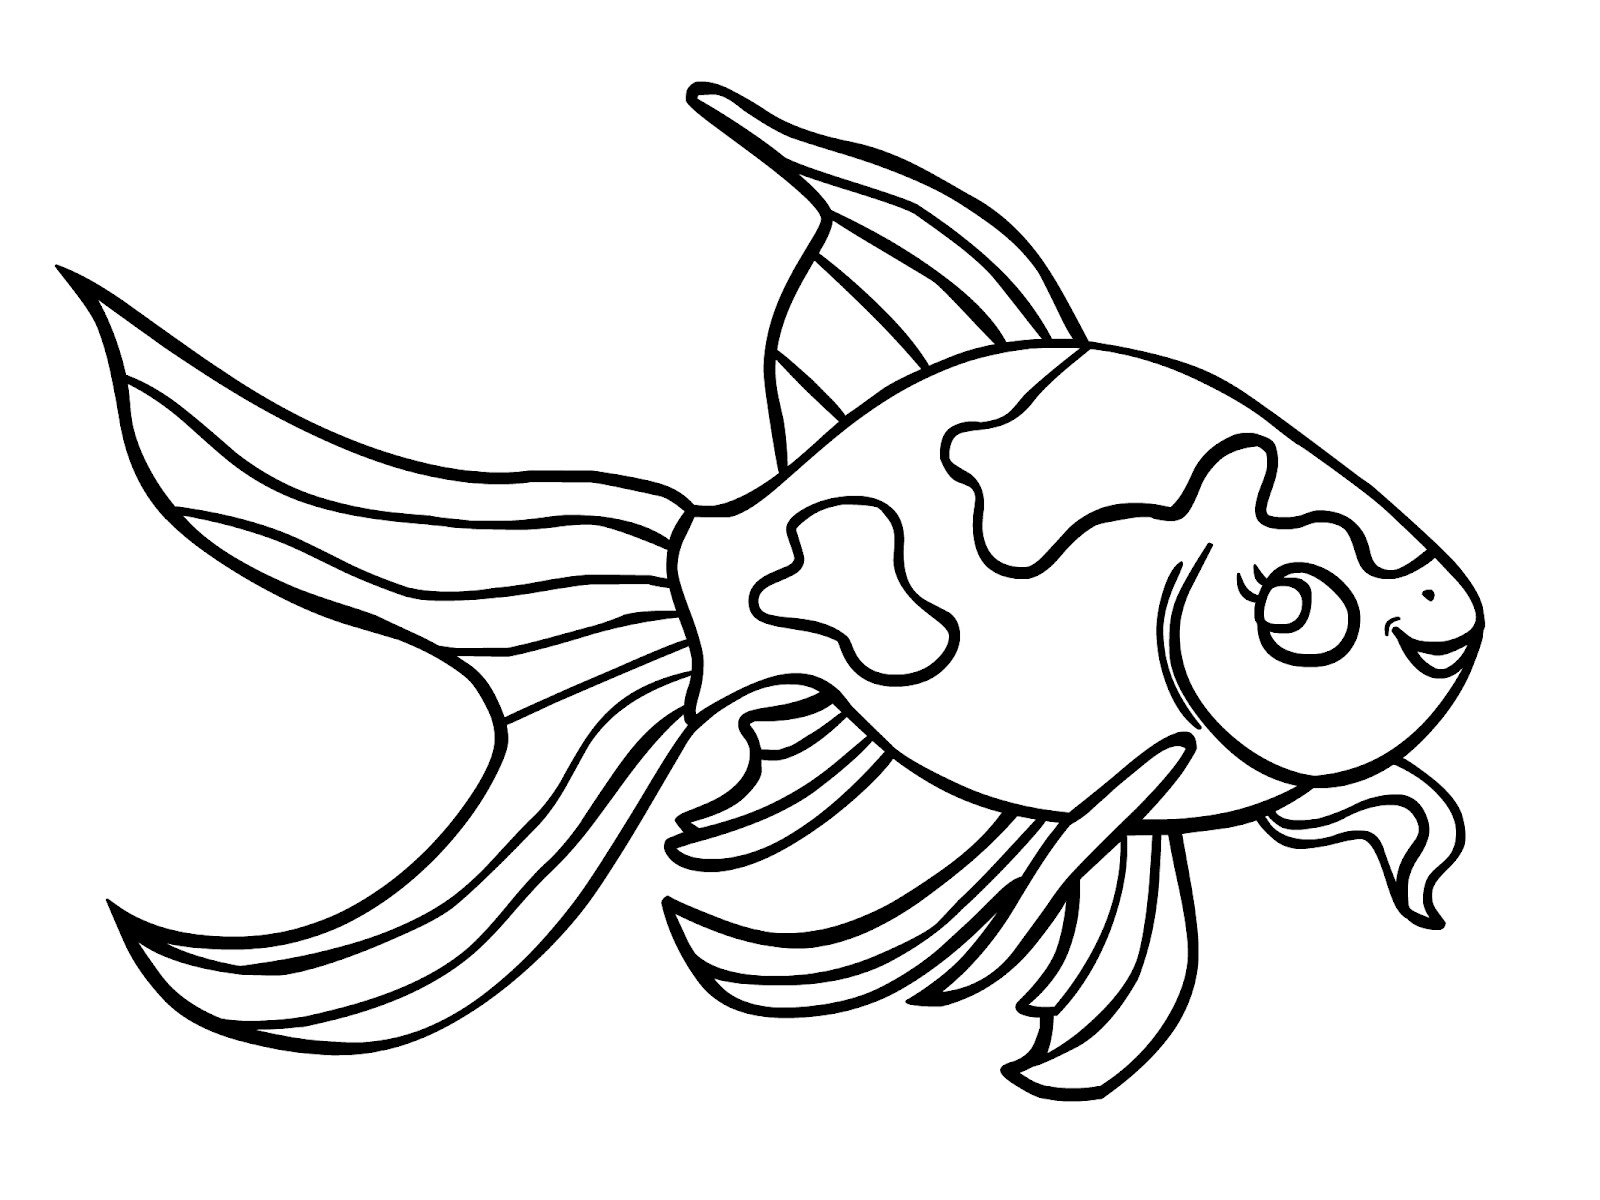 1600x1200 Easy Fish Colouring Picture Energy Coloring Page Of A Free